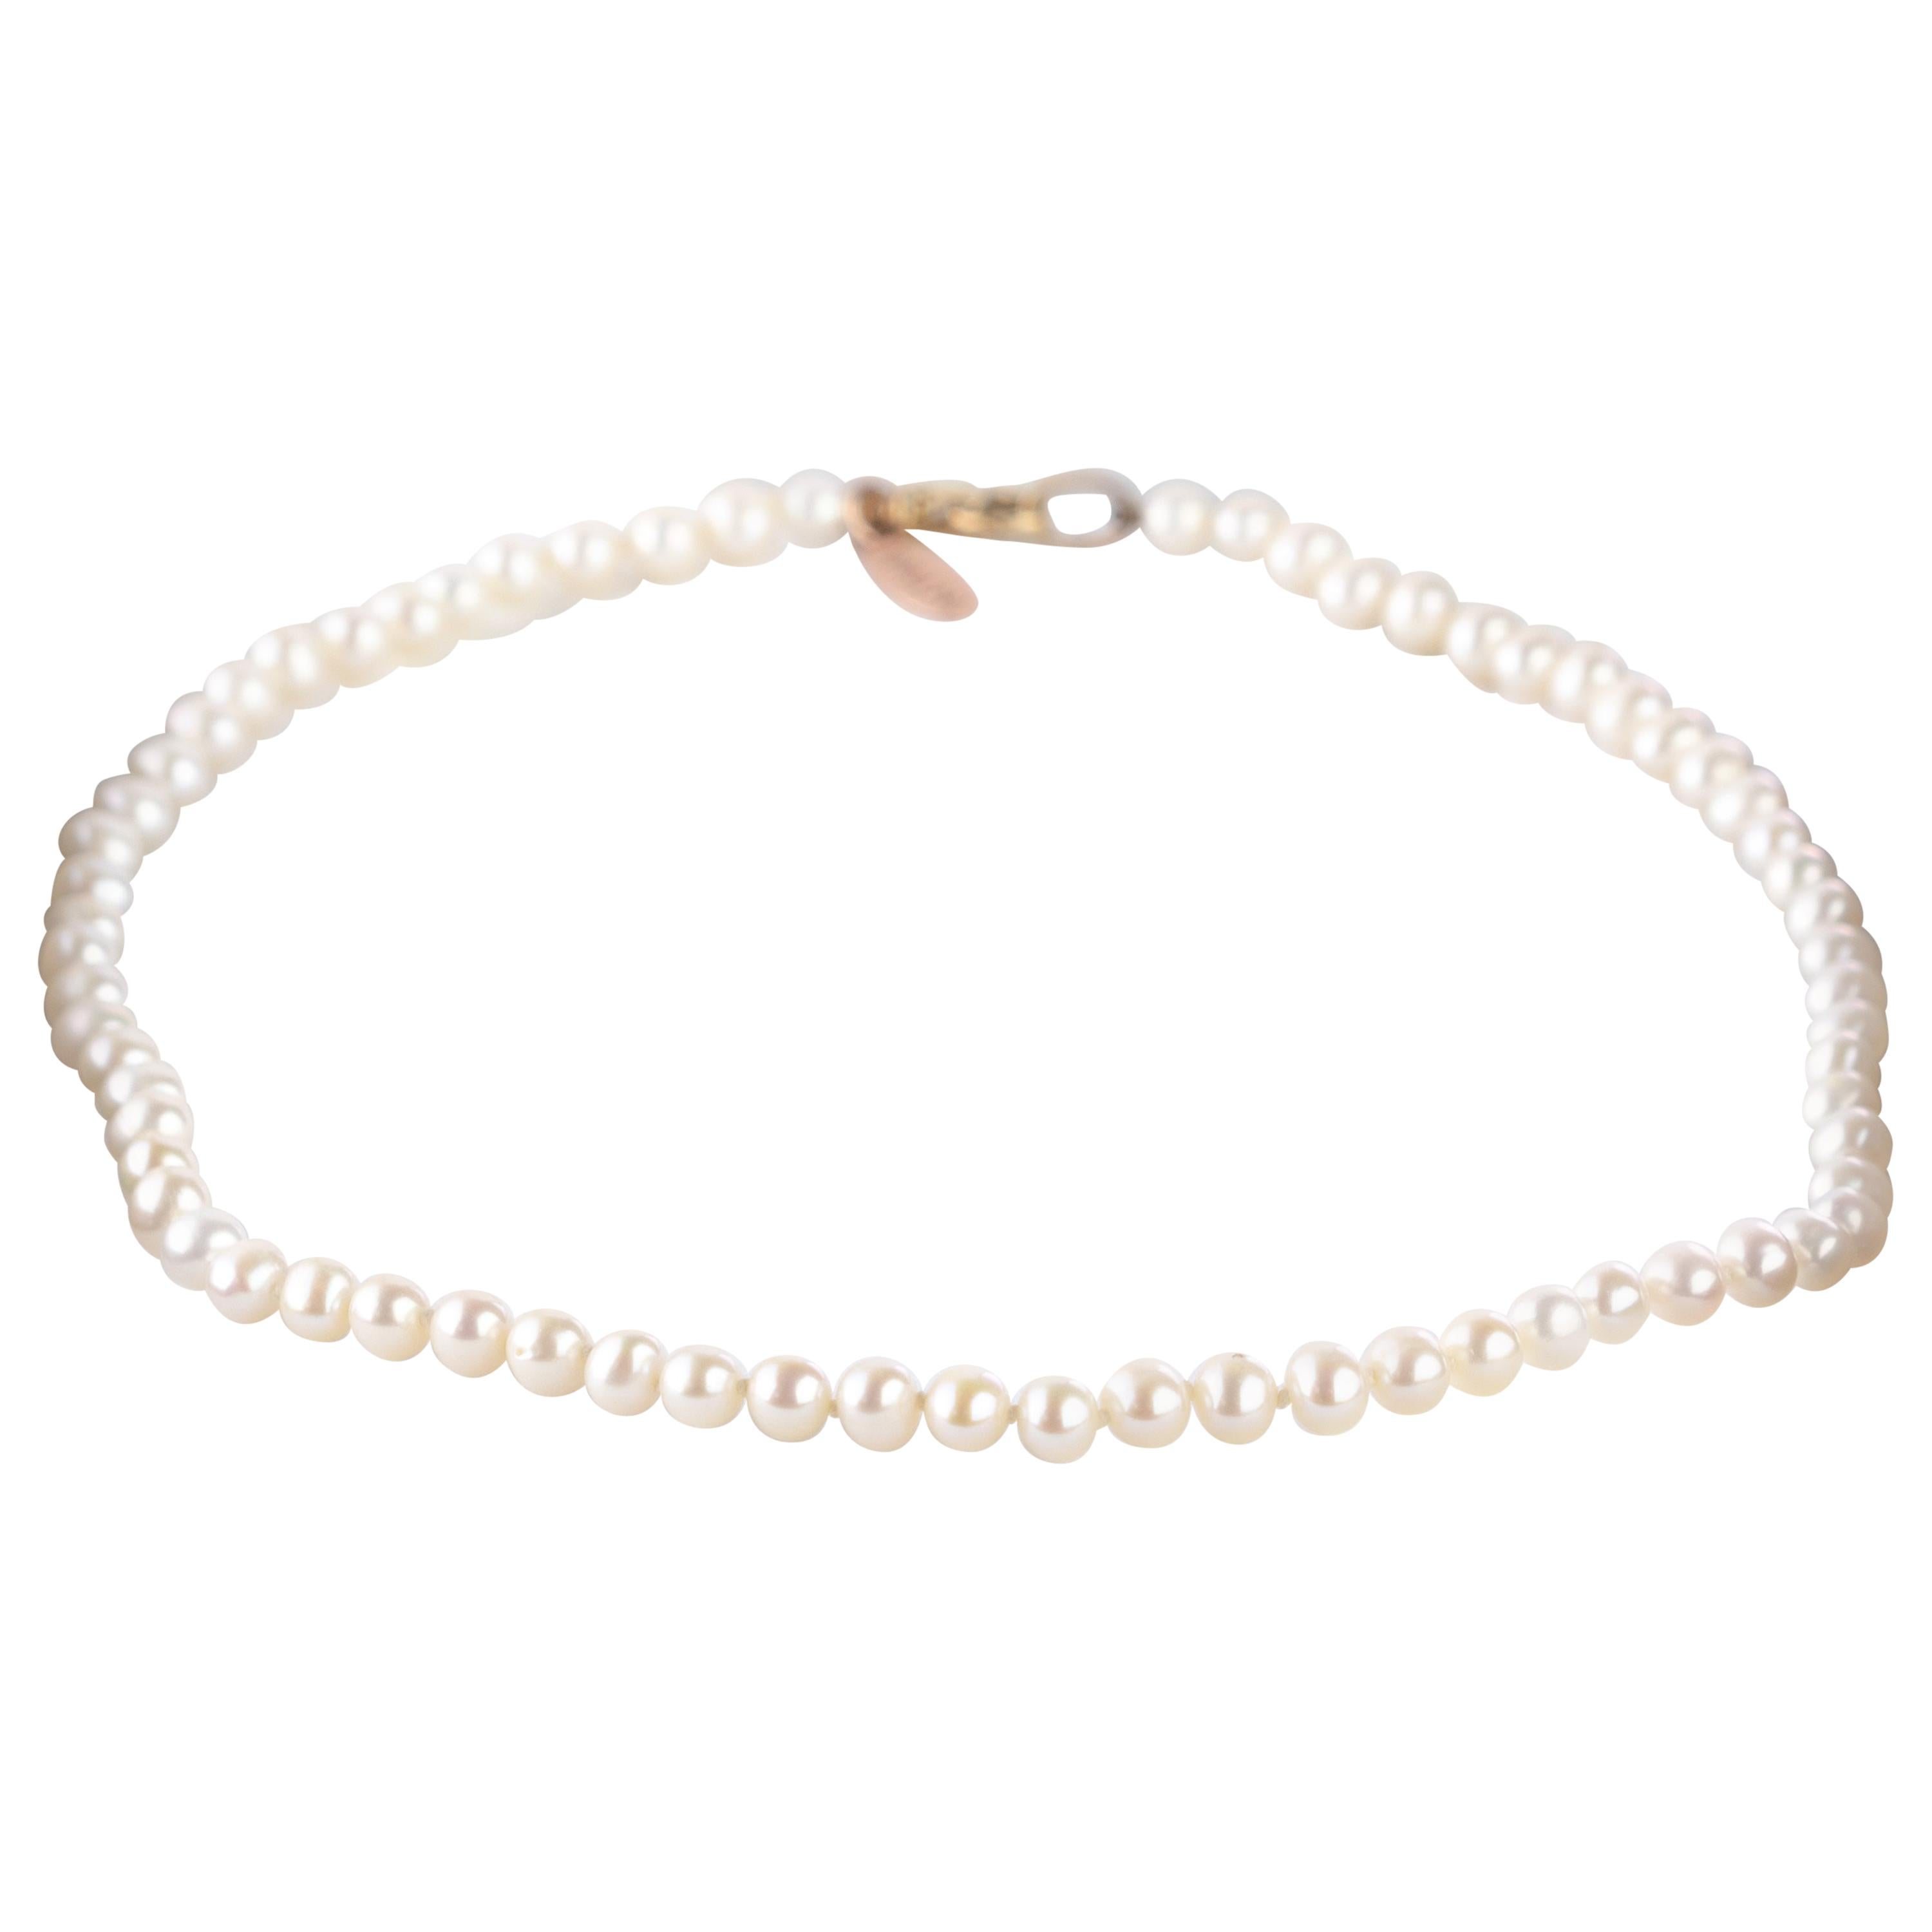 18 Karat Yellow Gold Lobster Claw Closure Freshwater Pearl Choker Necklace